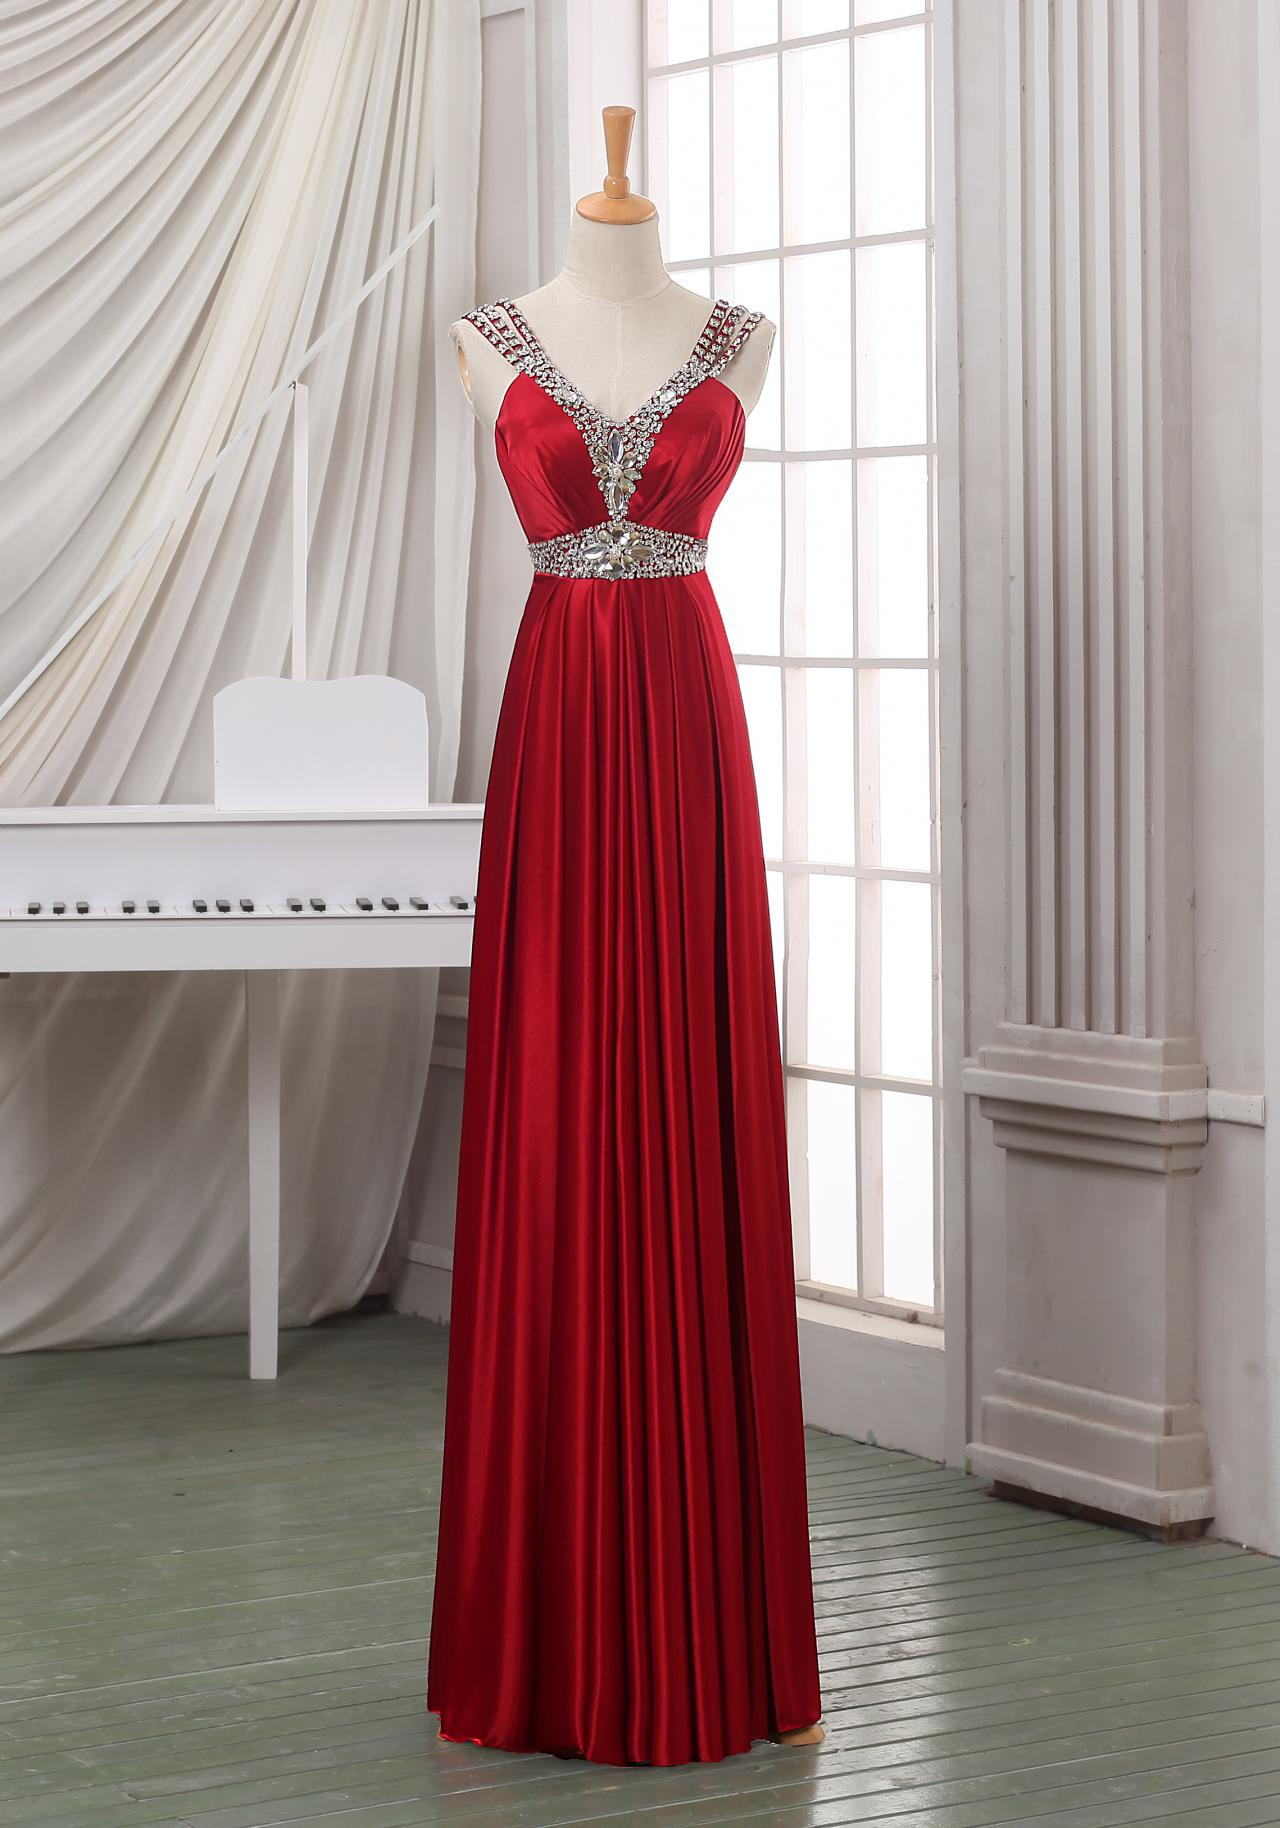 Red Long A-Line Pleated Prom Dress Featuring Plunge V Bodice and Crystal Embellishments